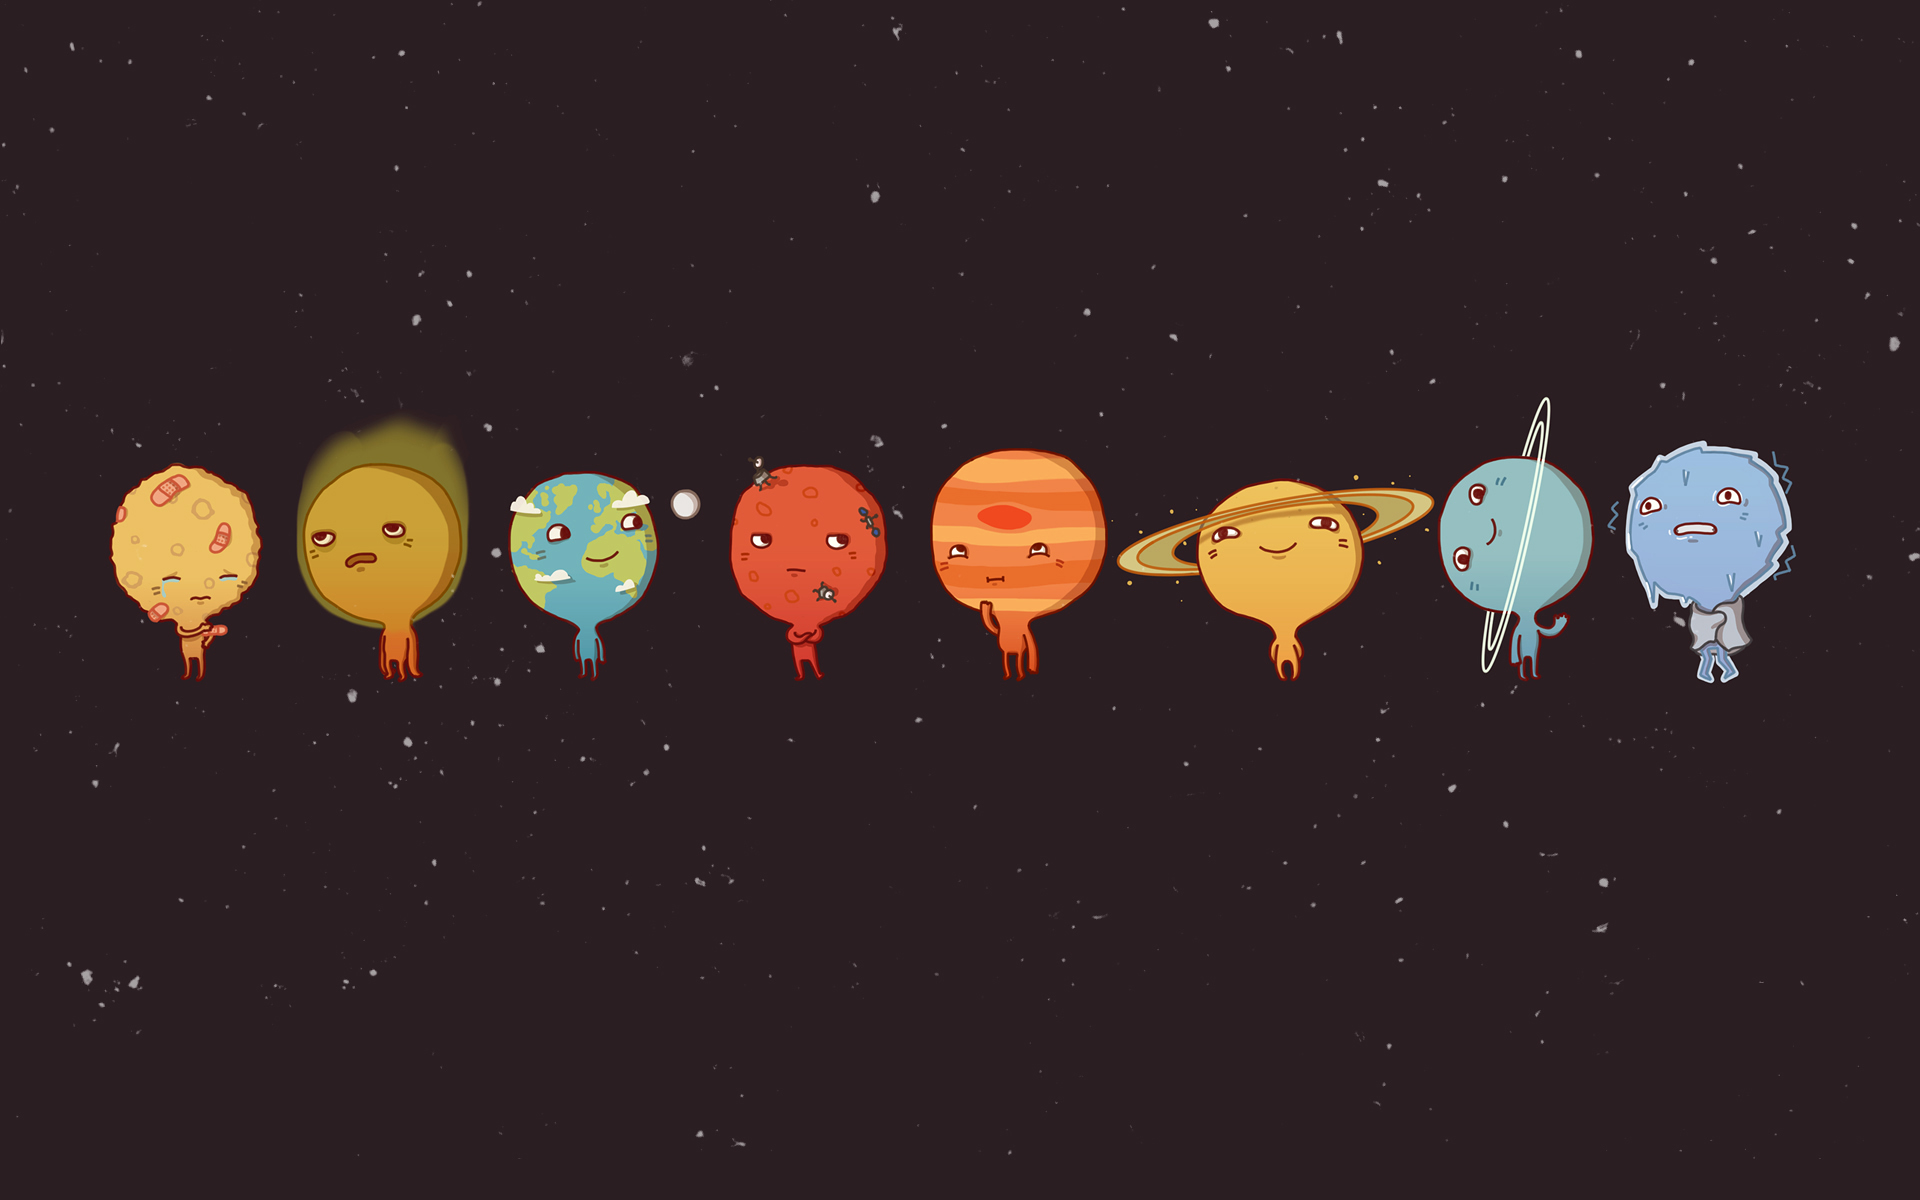 planets solar system wallpaper 1920x1200 - photo #31